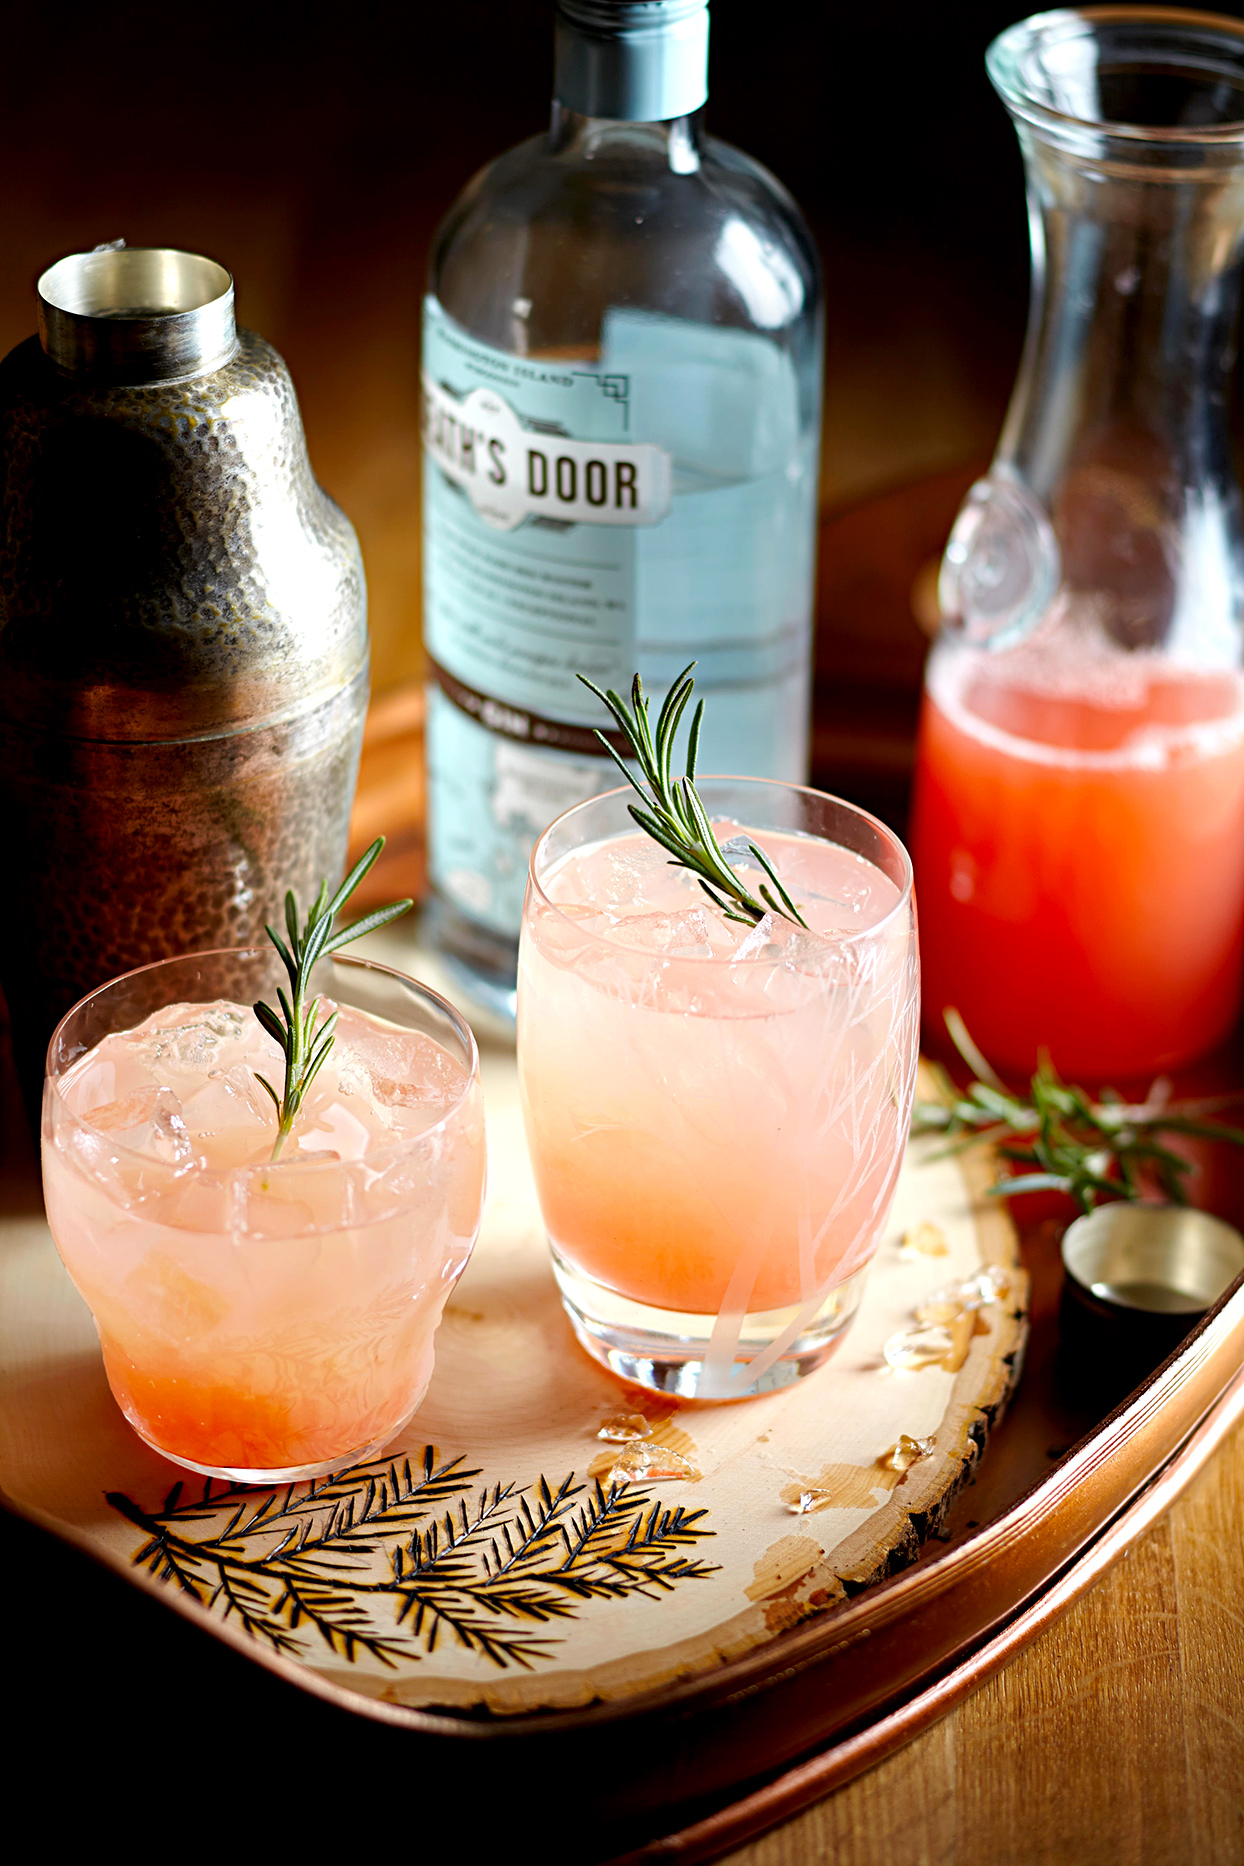 Rosemary-Grapefruit Gin Cocktail